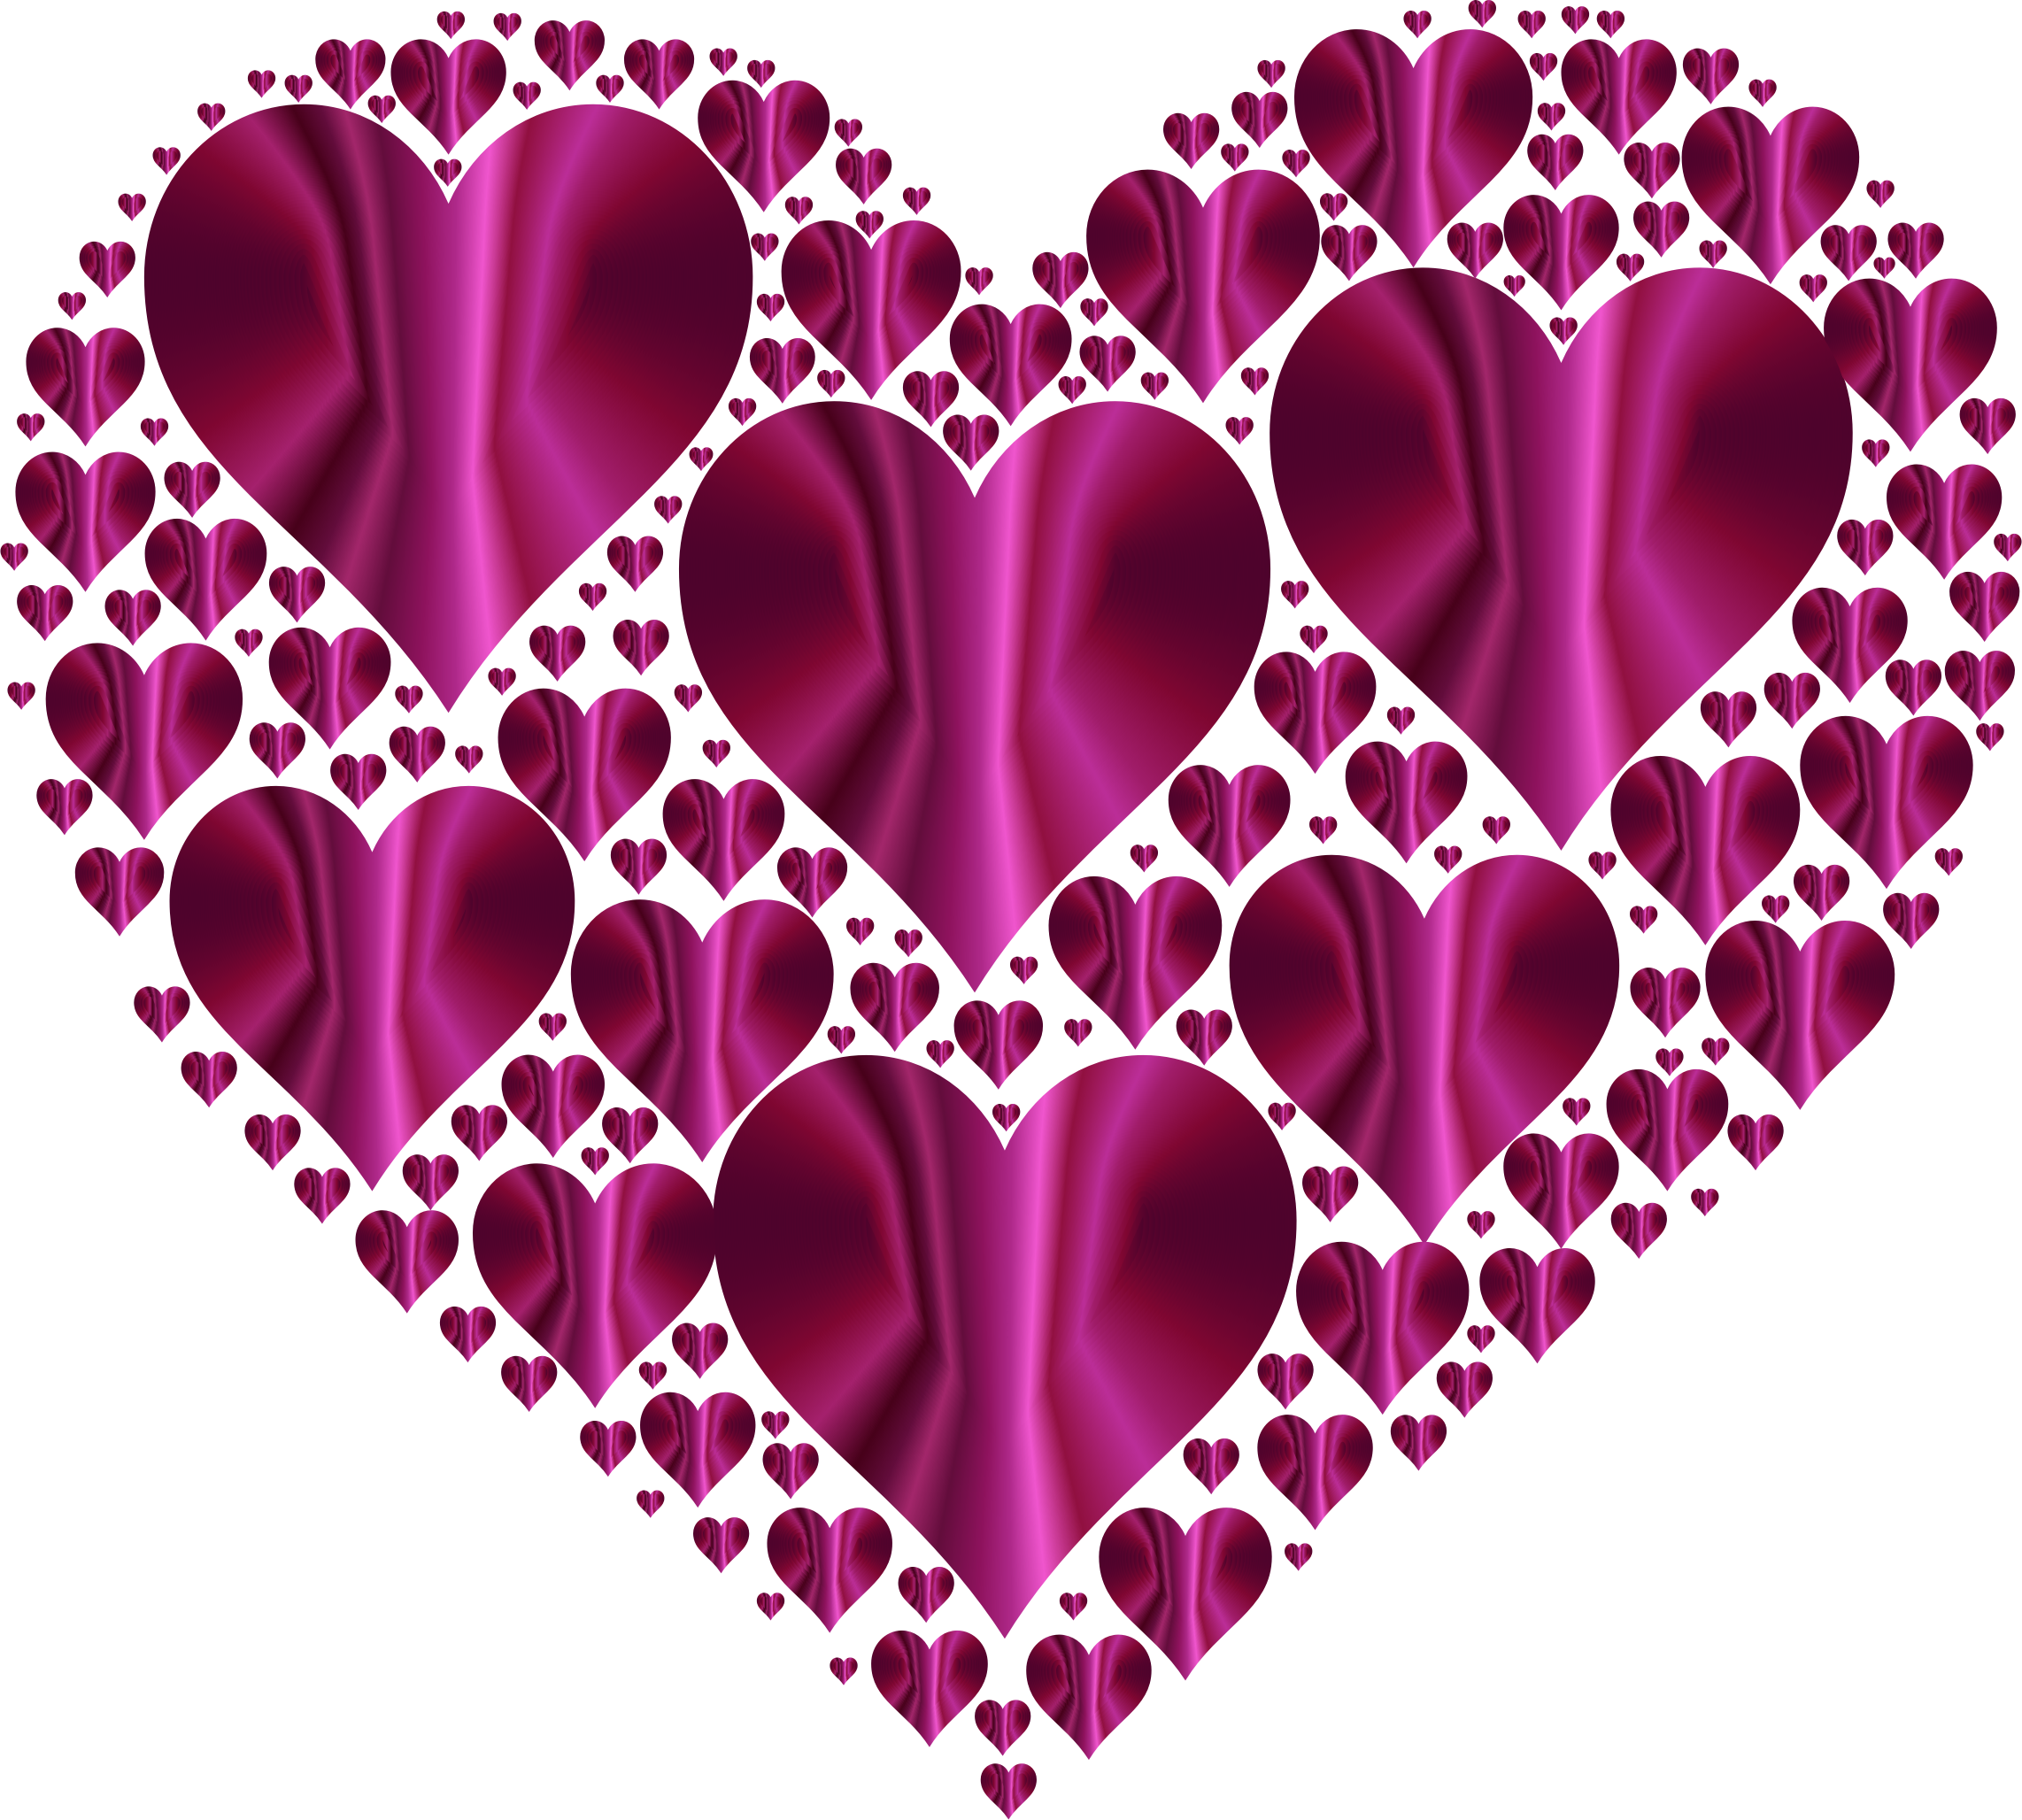 Hearts In Heart Rejuvenated 20 No Background by GDJ